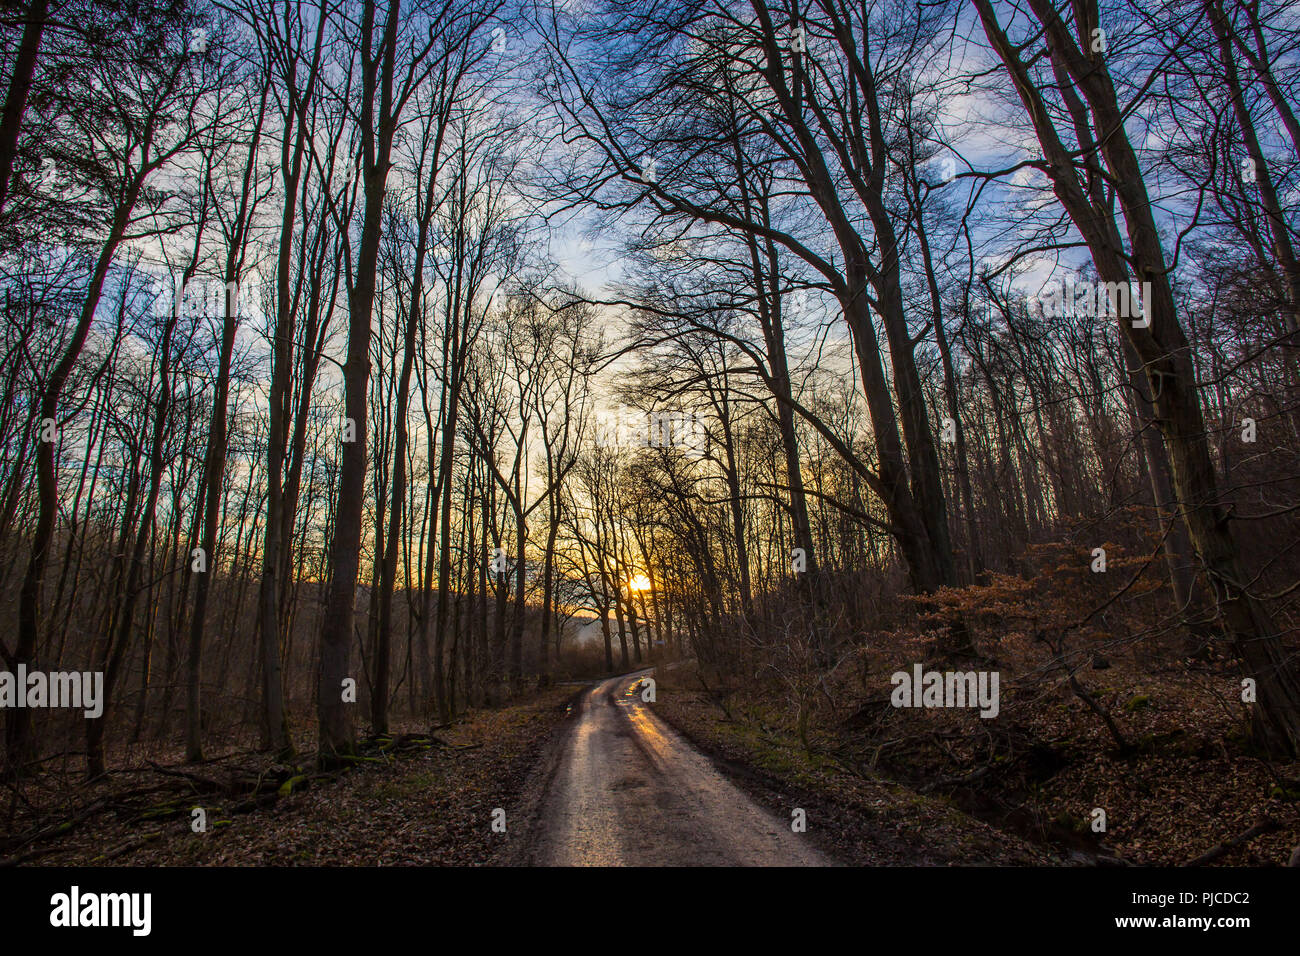 Sunset on mountain forest pathway with leafless trees at the end of winter before spring - Stock Image